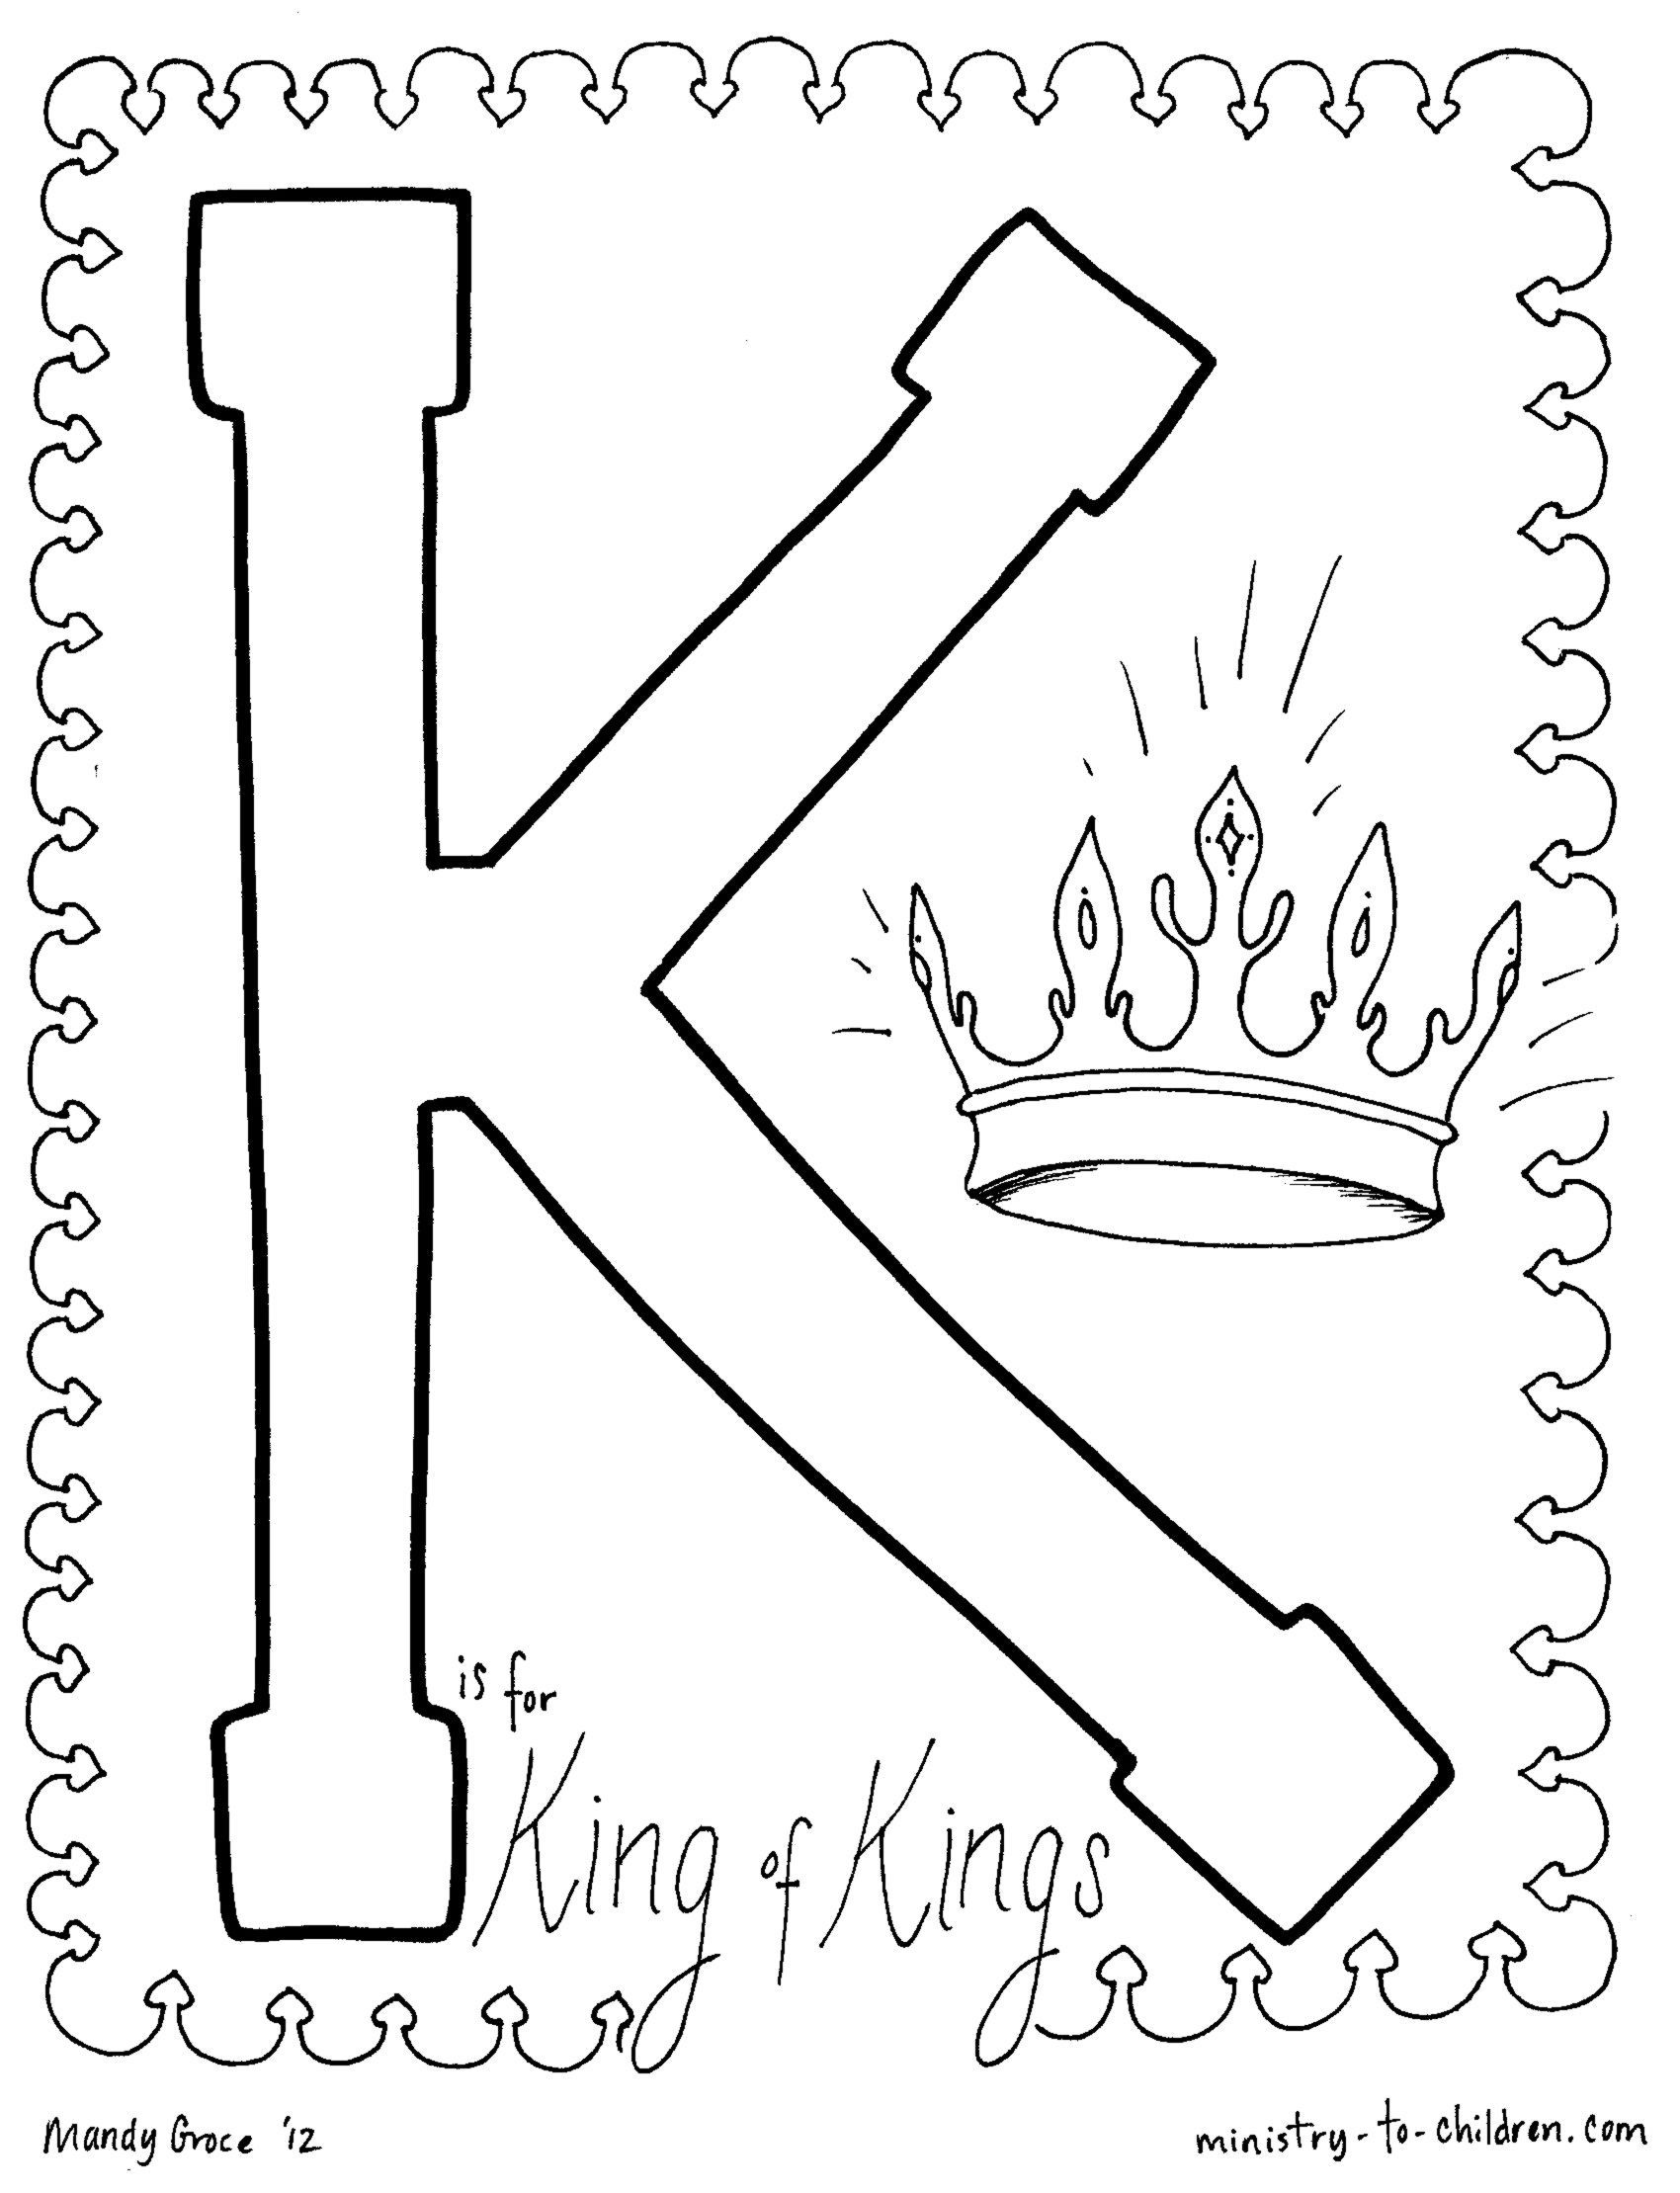 K Is For King Of Kings Coloring Page